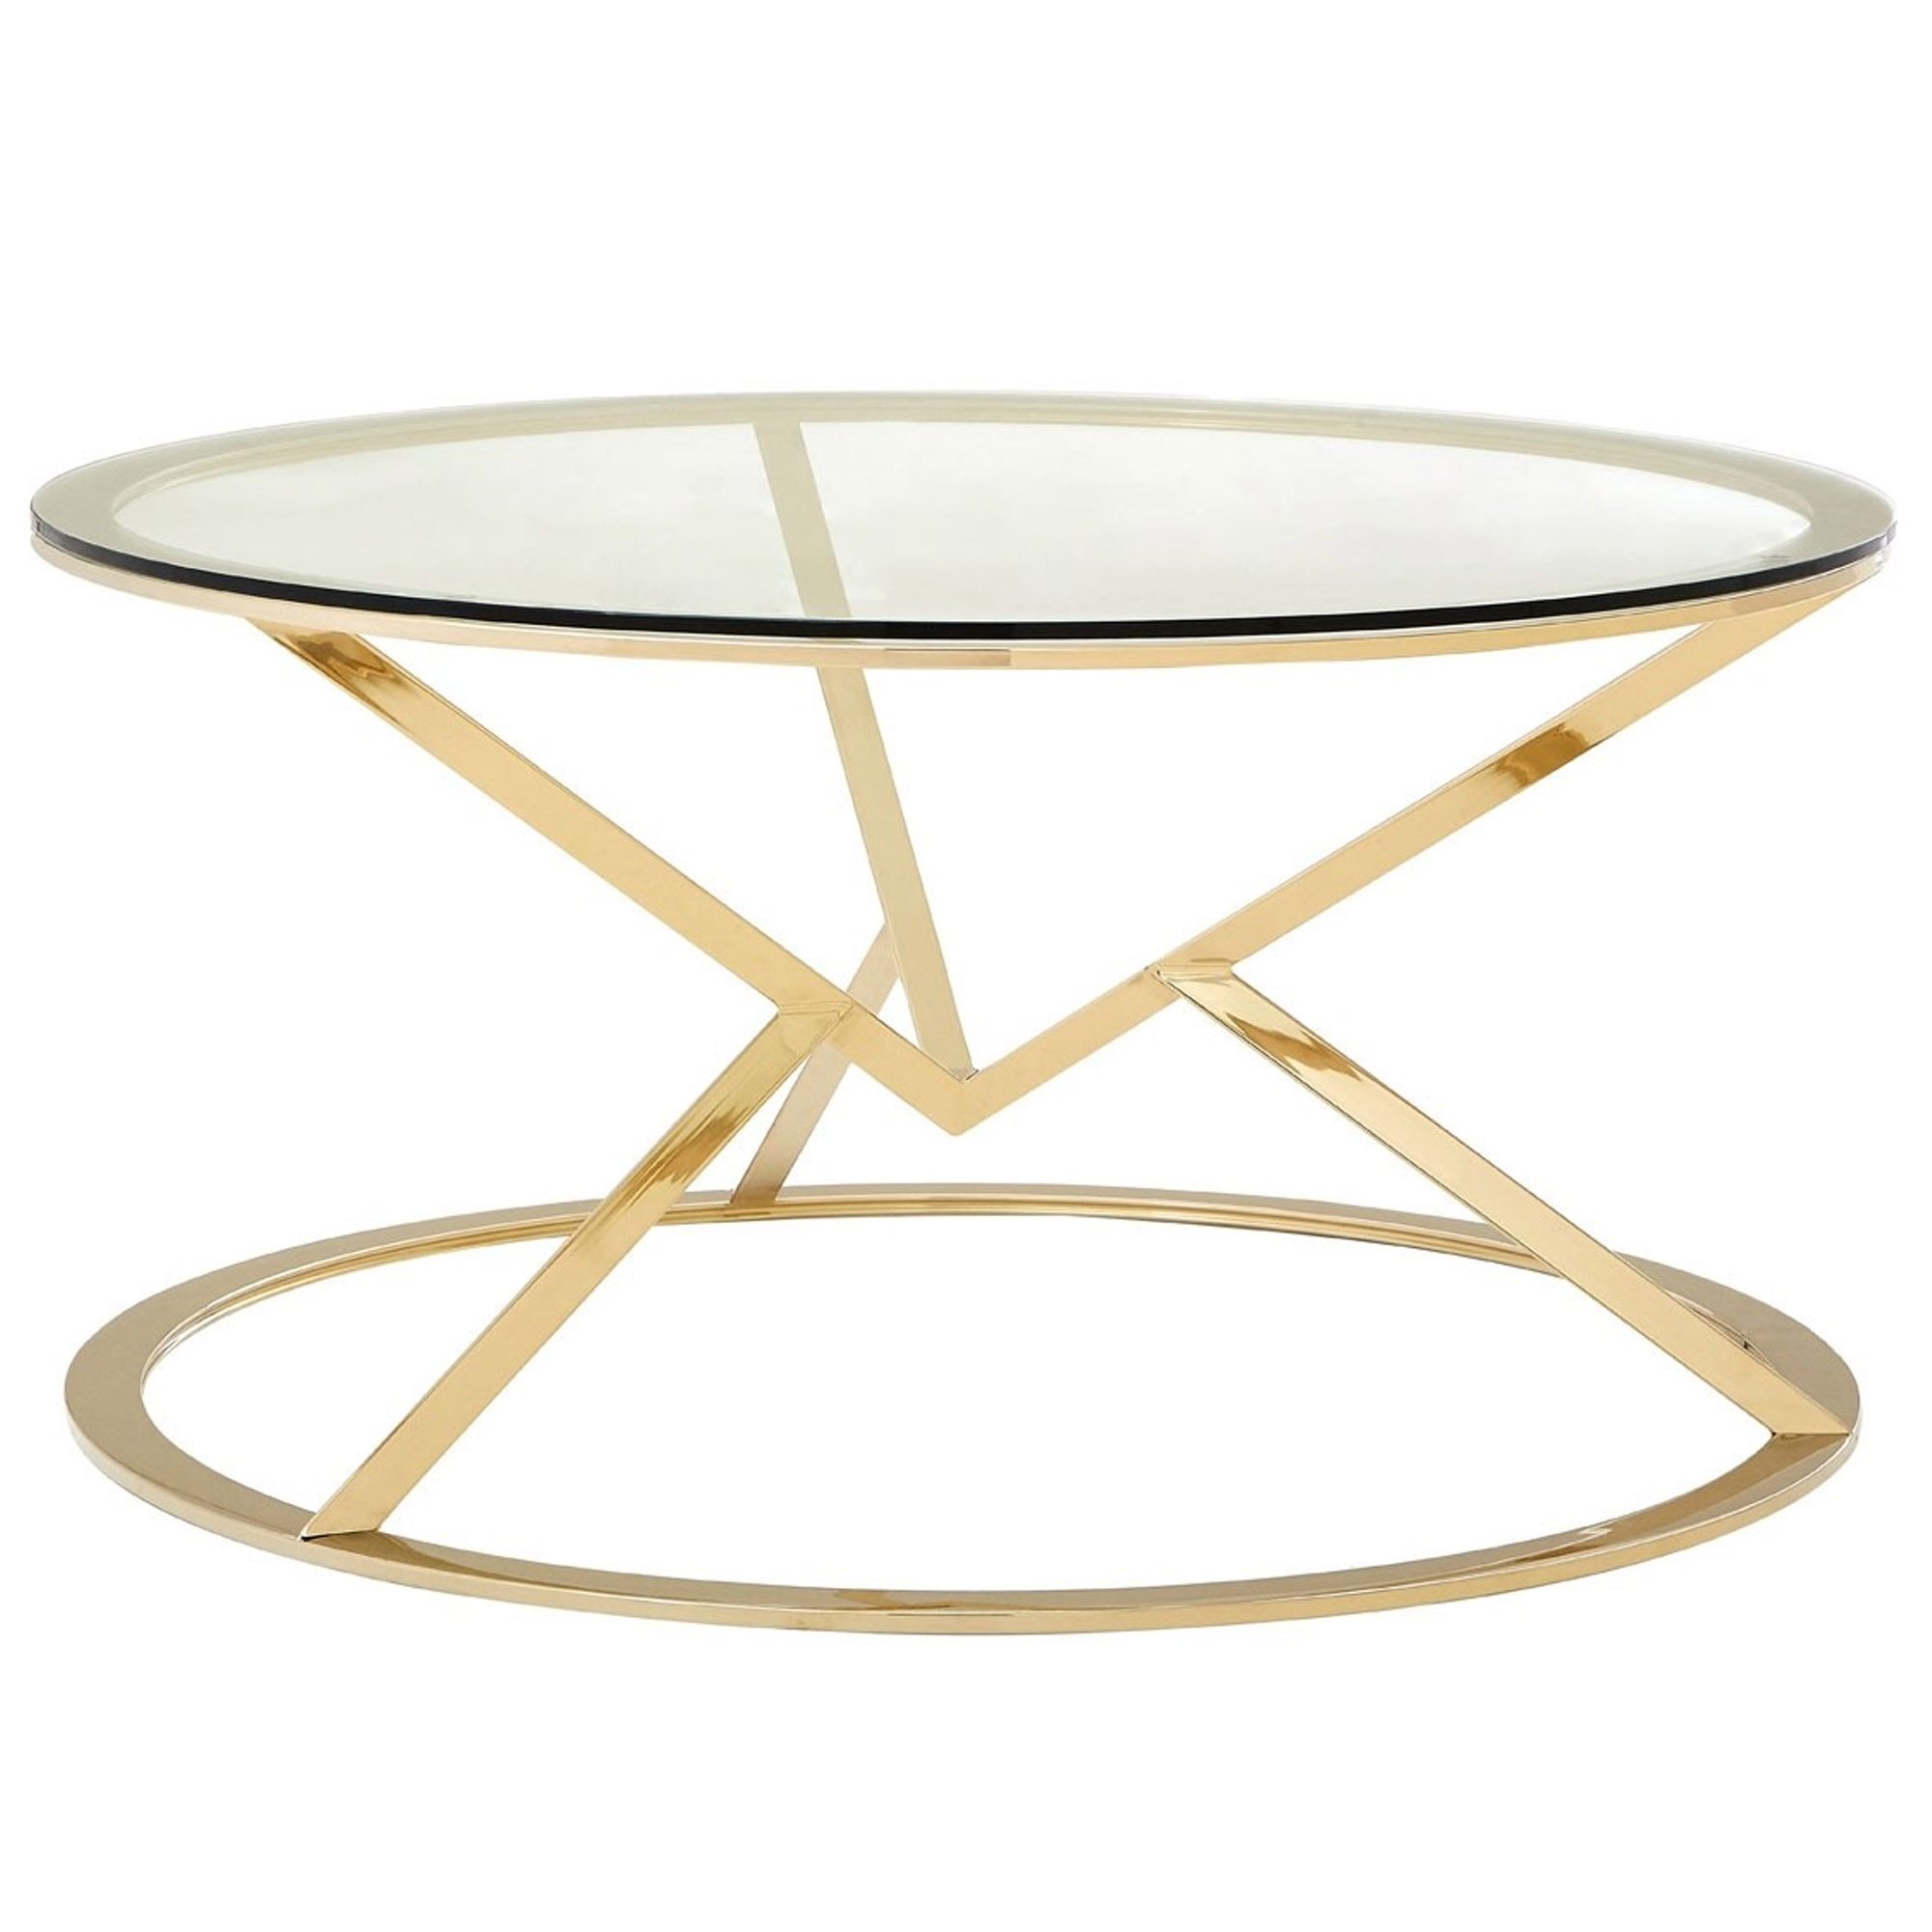 Gold Metal Round Coffee Table.Gold Allure Round Coffee Table